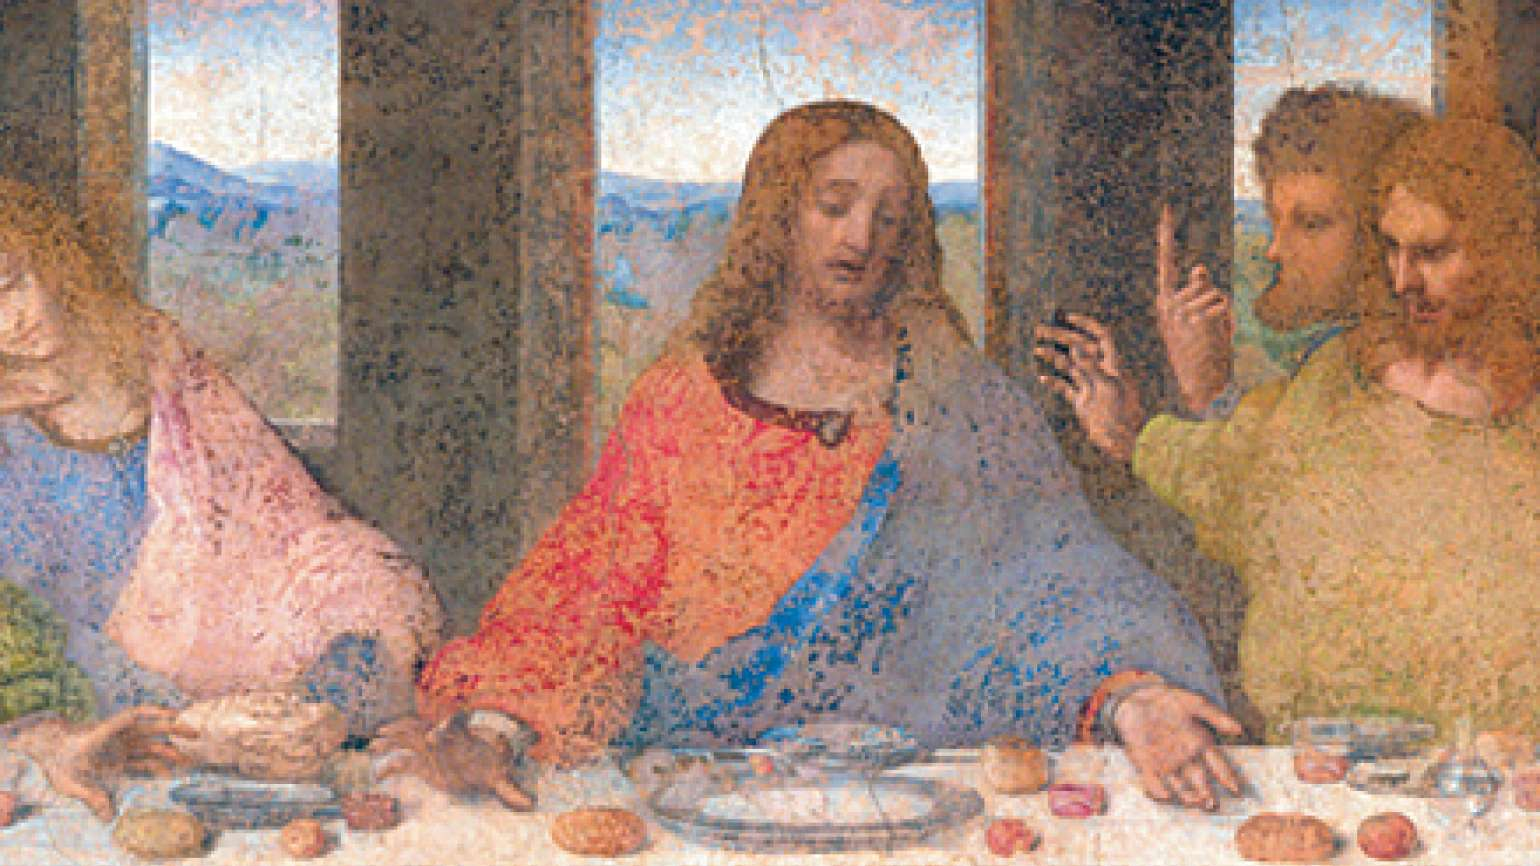 Leonardo's depiction of Christ at the Last Supper